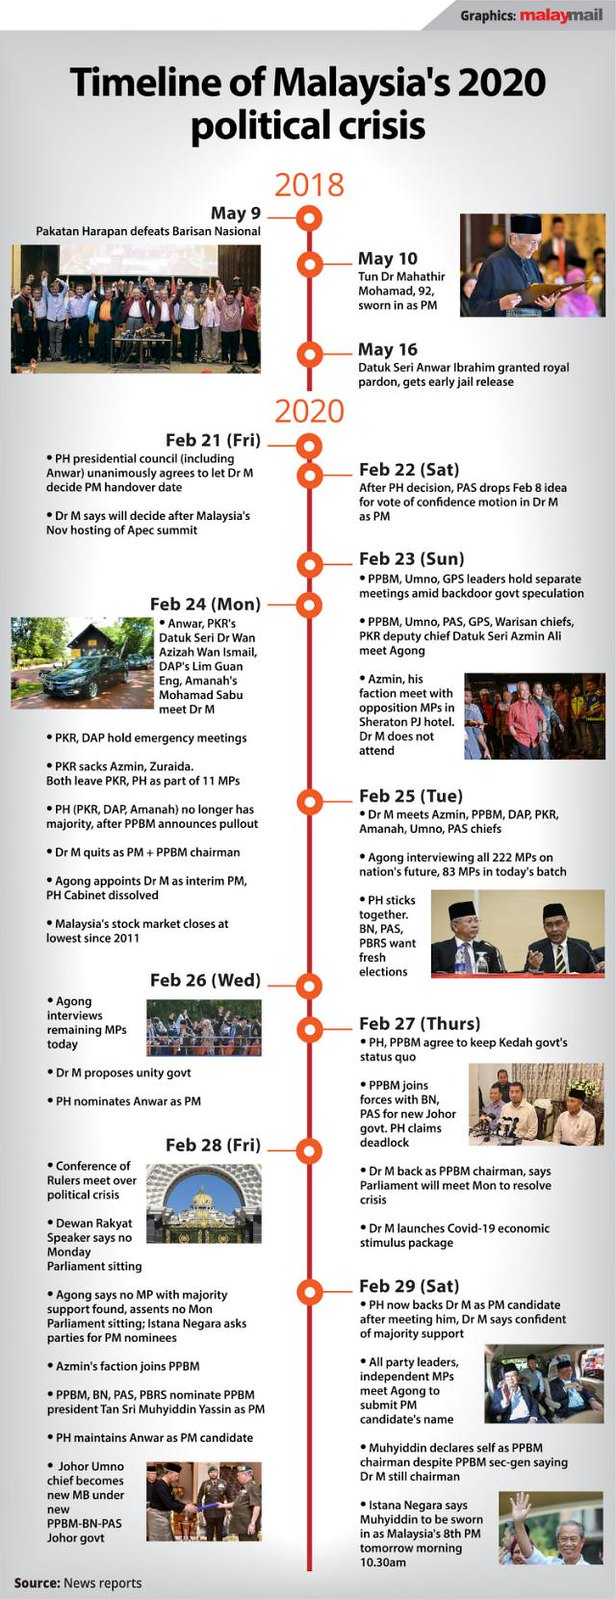 Timeline of Malaysia's 2020 political crisis